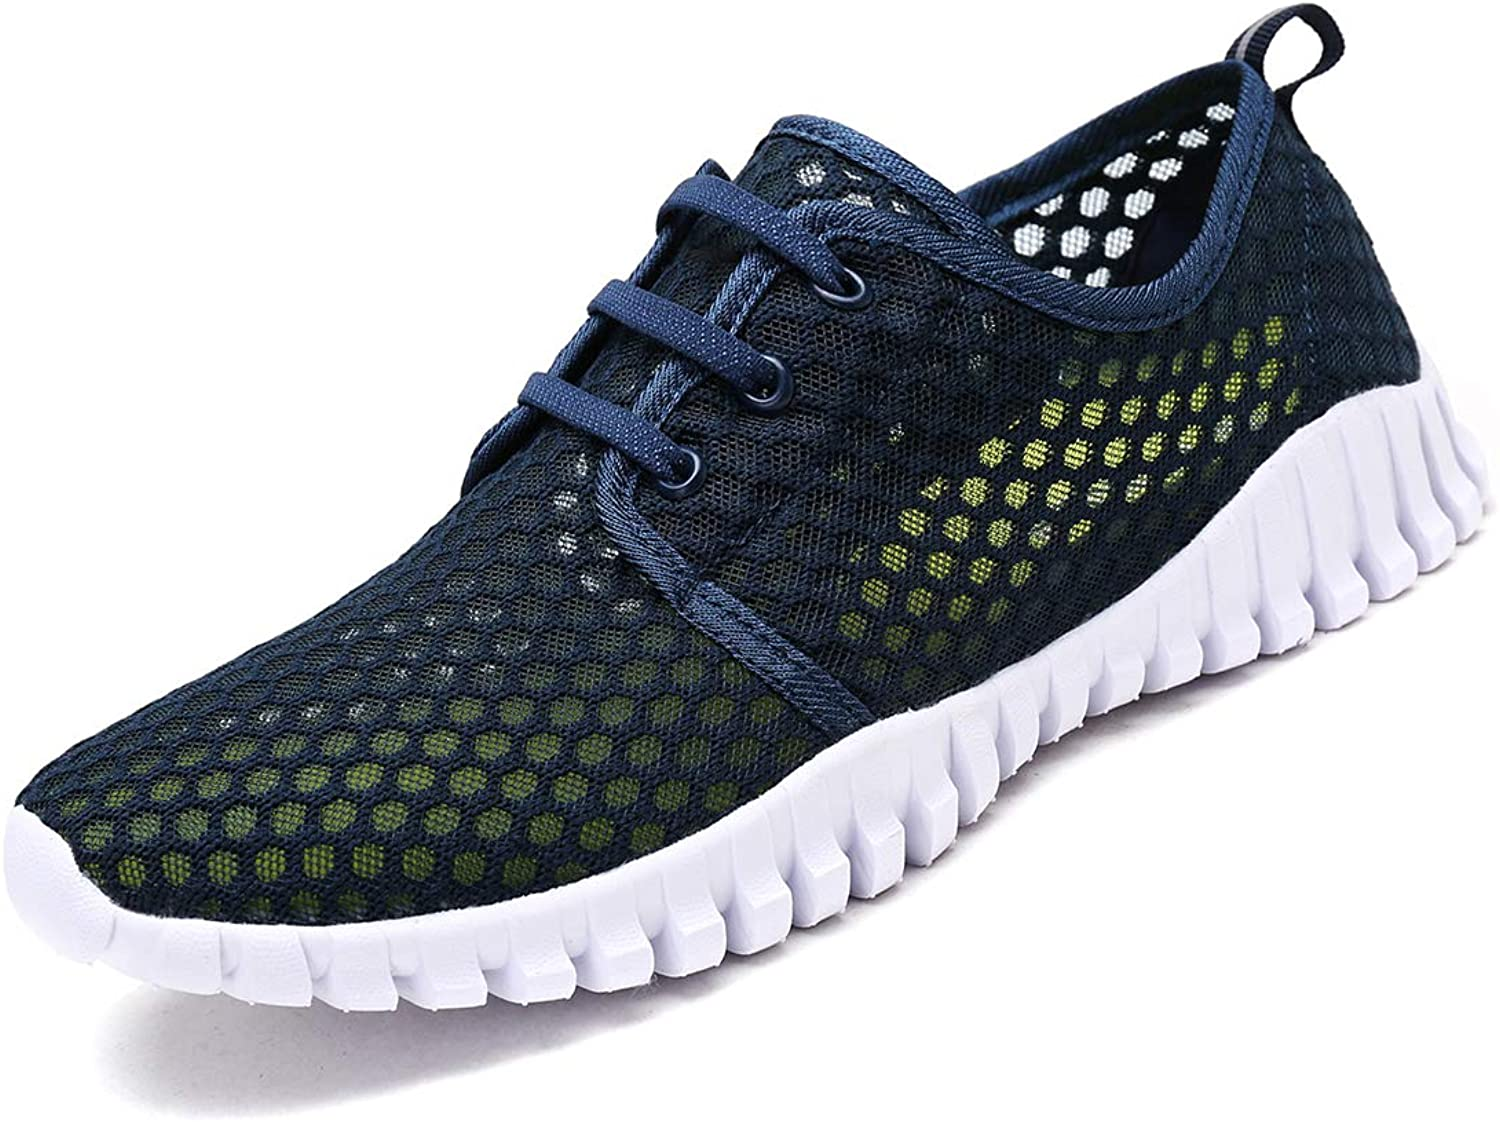 KEESKY Quick Drying Water shoes Barefoot Mesh Aqua shoes for Men and Women